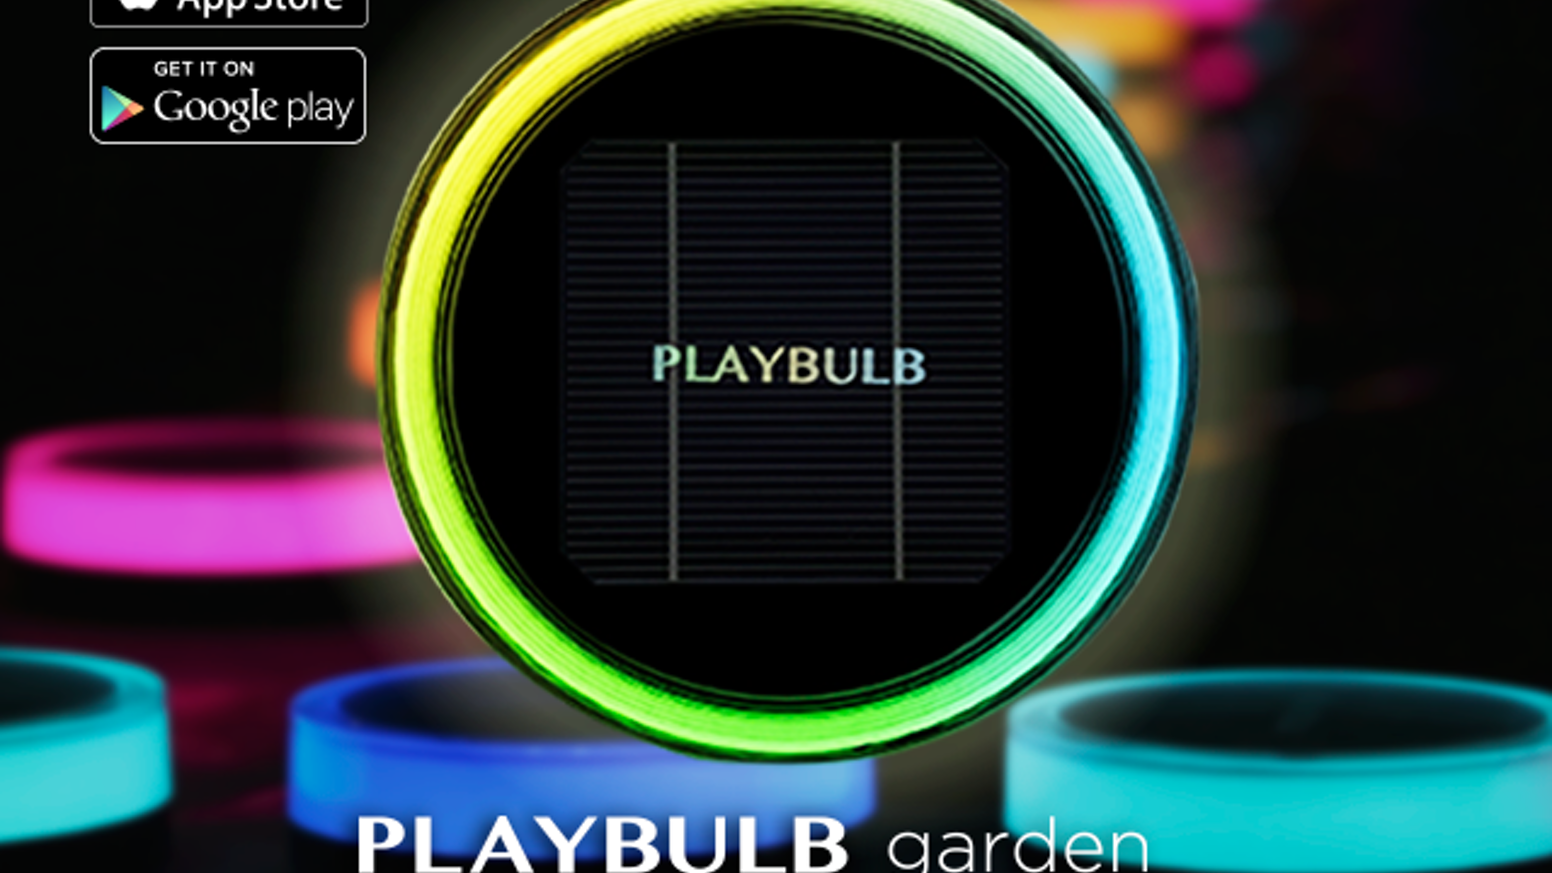 PLAYBULB garden lets you add shining colors and special lighting effects to your home garden. Garden lighting show is one tap away.